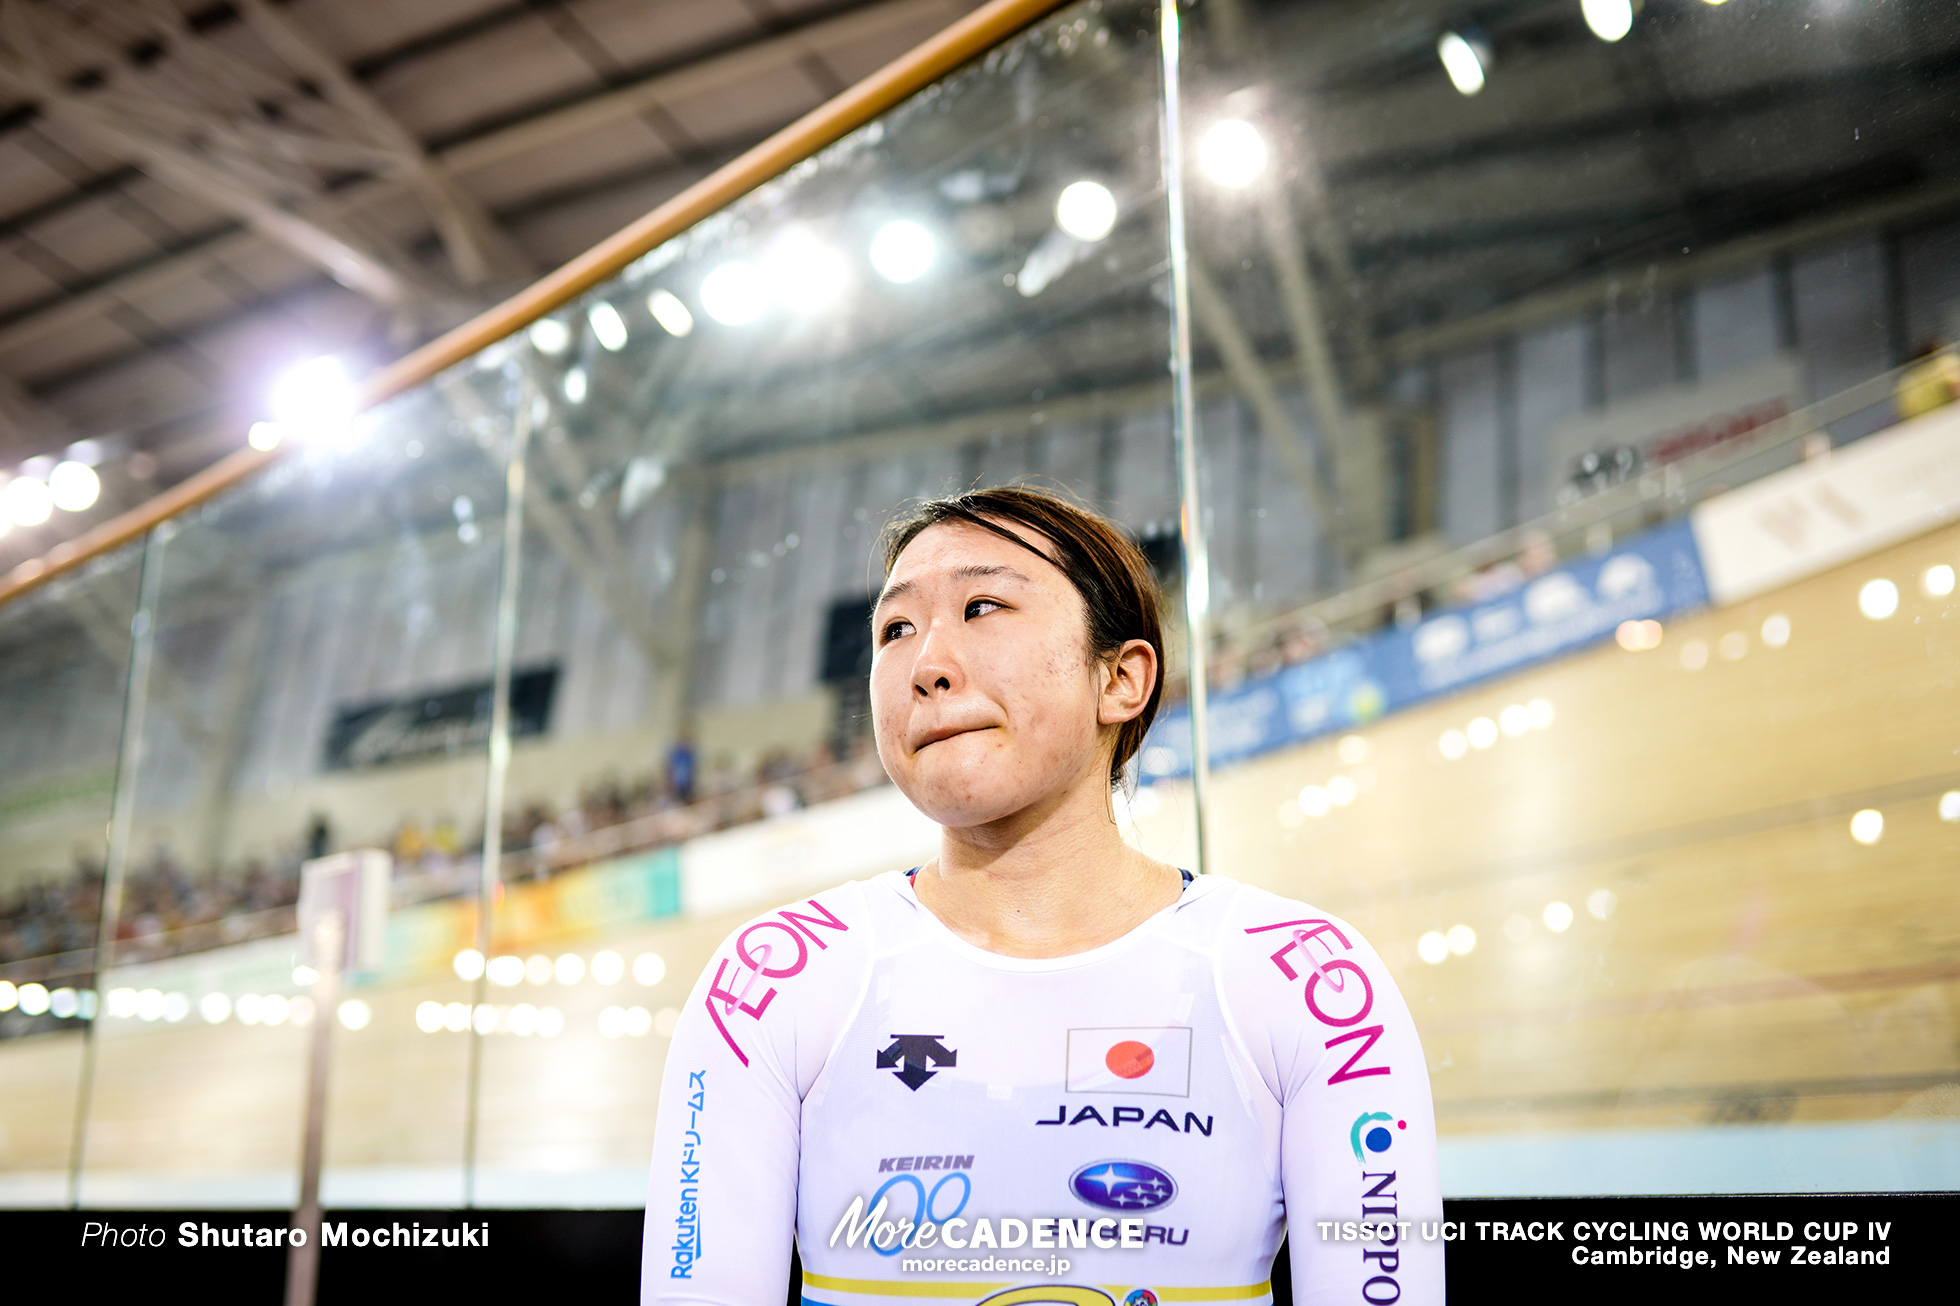 Point Race / Women's Omnium / TISSOT UCI TRACK CYCLING WORLD CUP IV, Cambridge, New Zealand, 梶原悠未